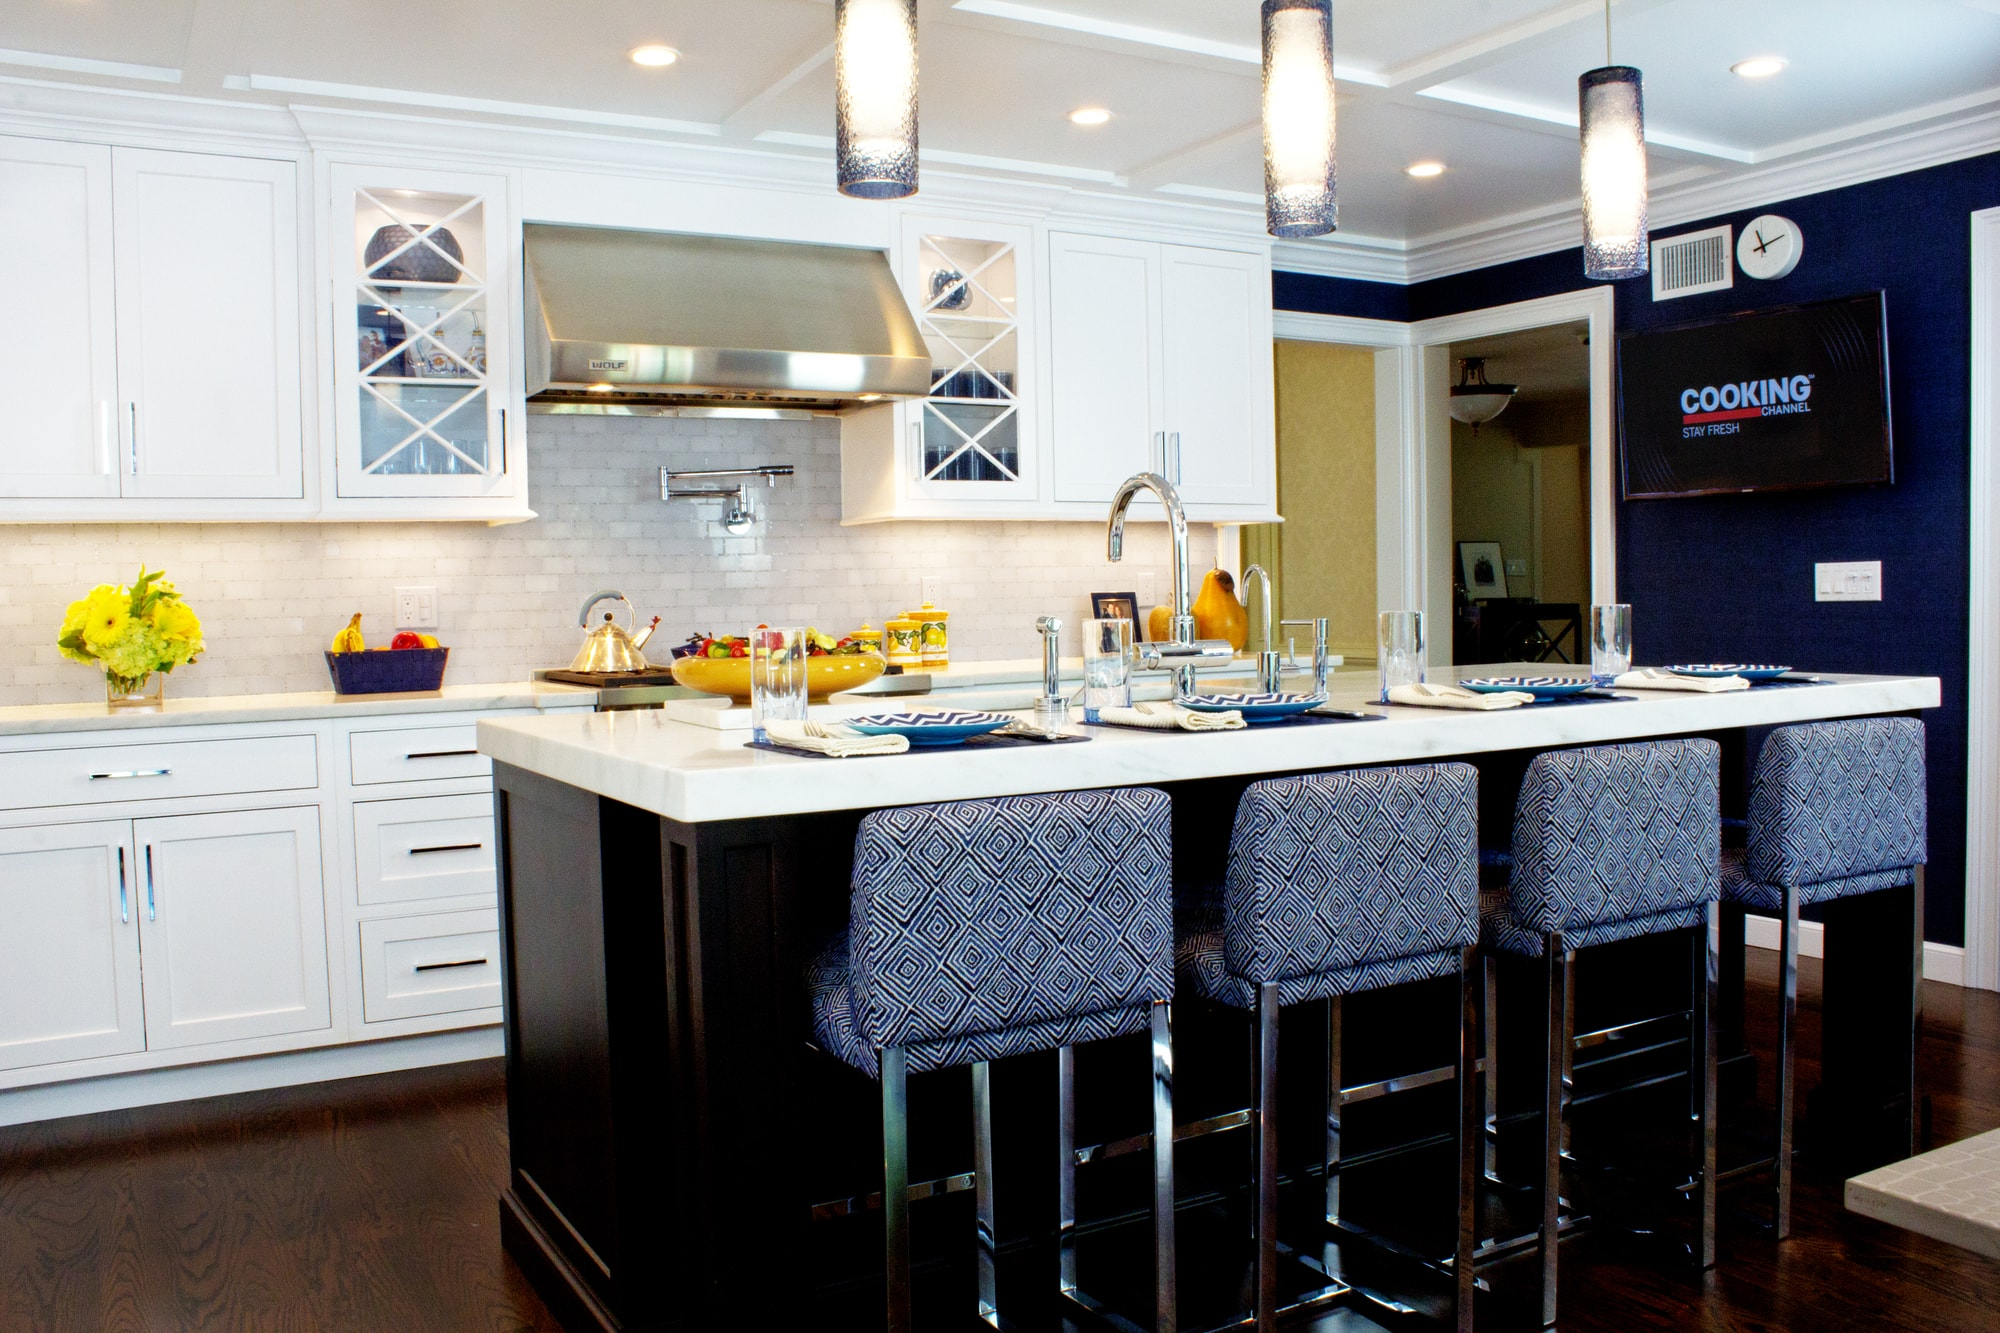 Transitional style kitchen with long center island